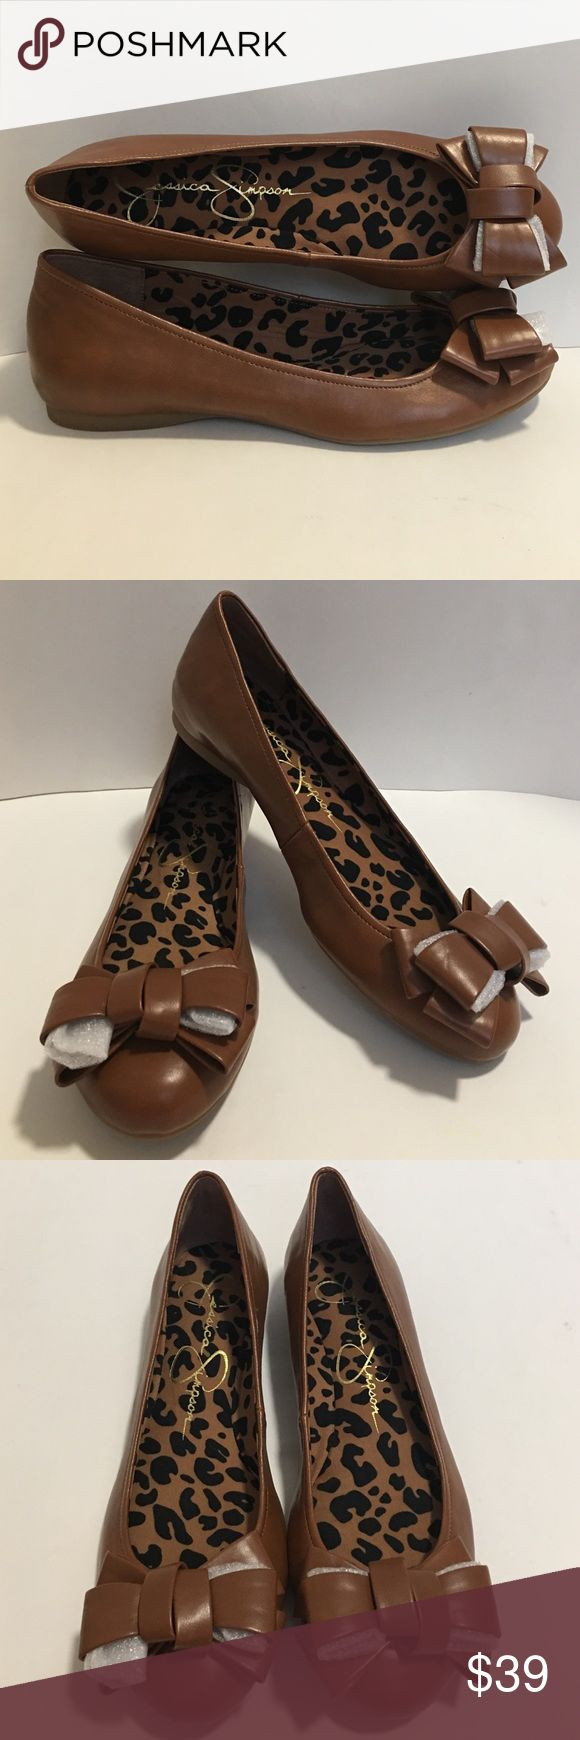 Jessica Simpson Flats Ballerina Round Toe Brown New! w/o box Jessica Simpson Muharram Flats: Brown. Bow Appliqué. Lightly Cushioned Footbed. Round Toe. Slip On. *Size marking on the bottom, right shoe, but never worn* Jessica Simpson Shoes Flats & Loafers